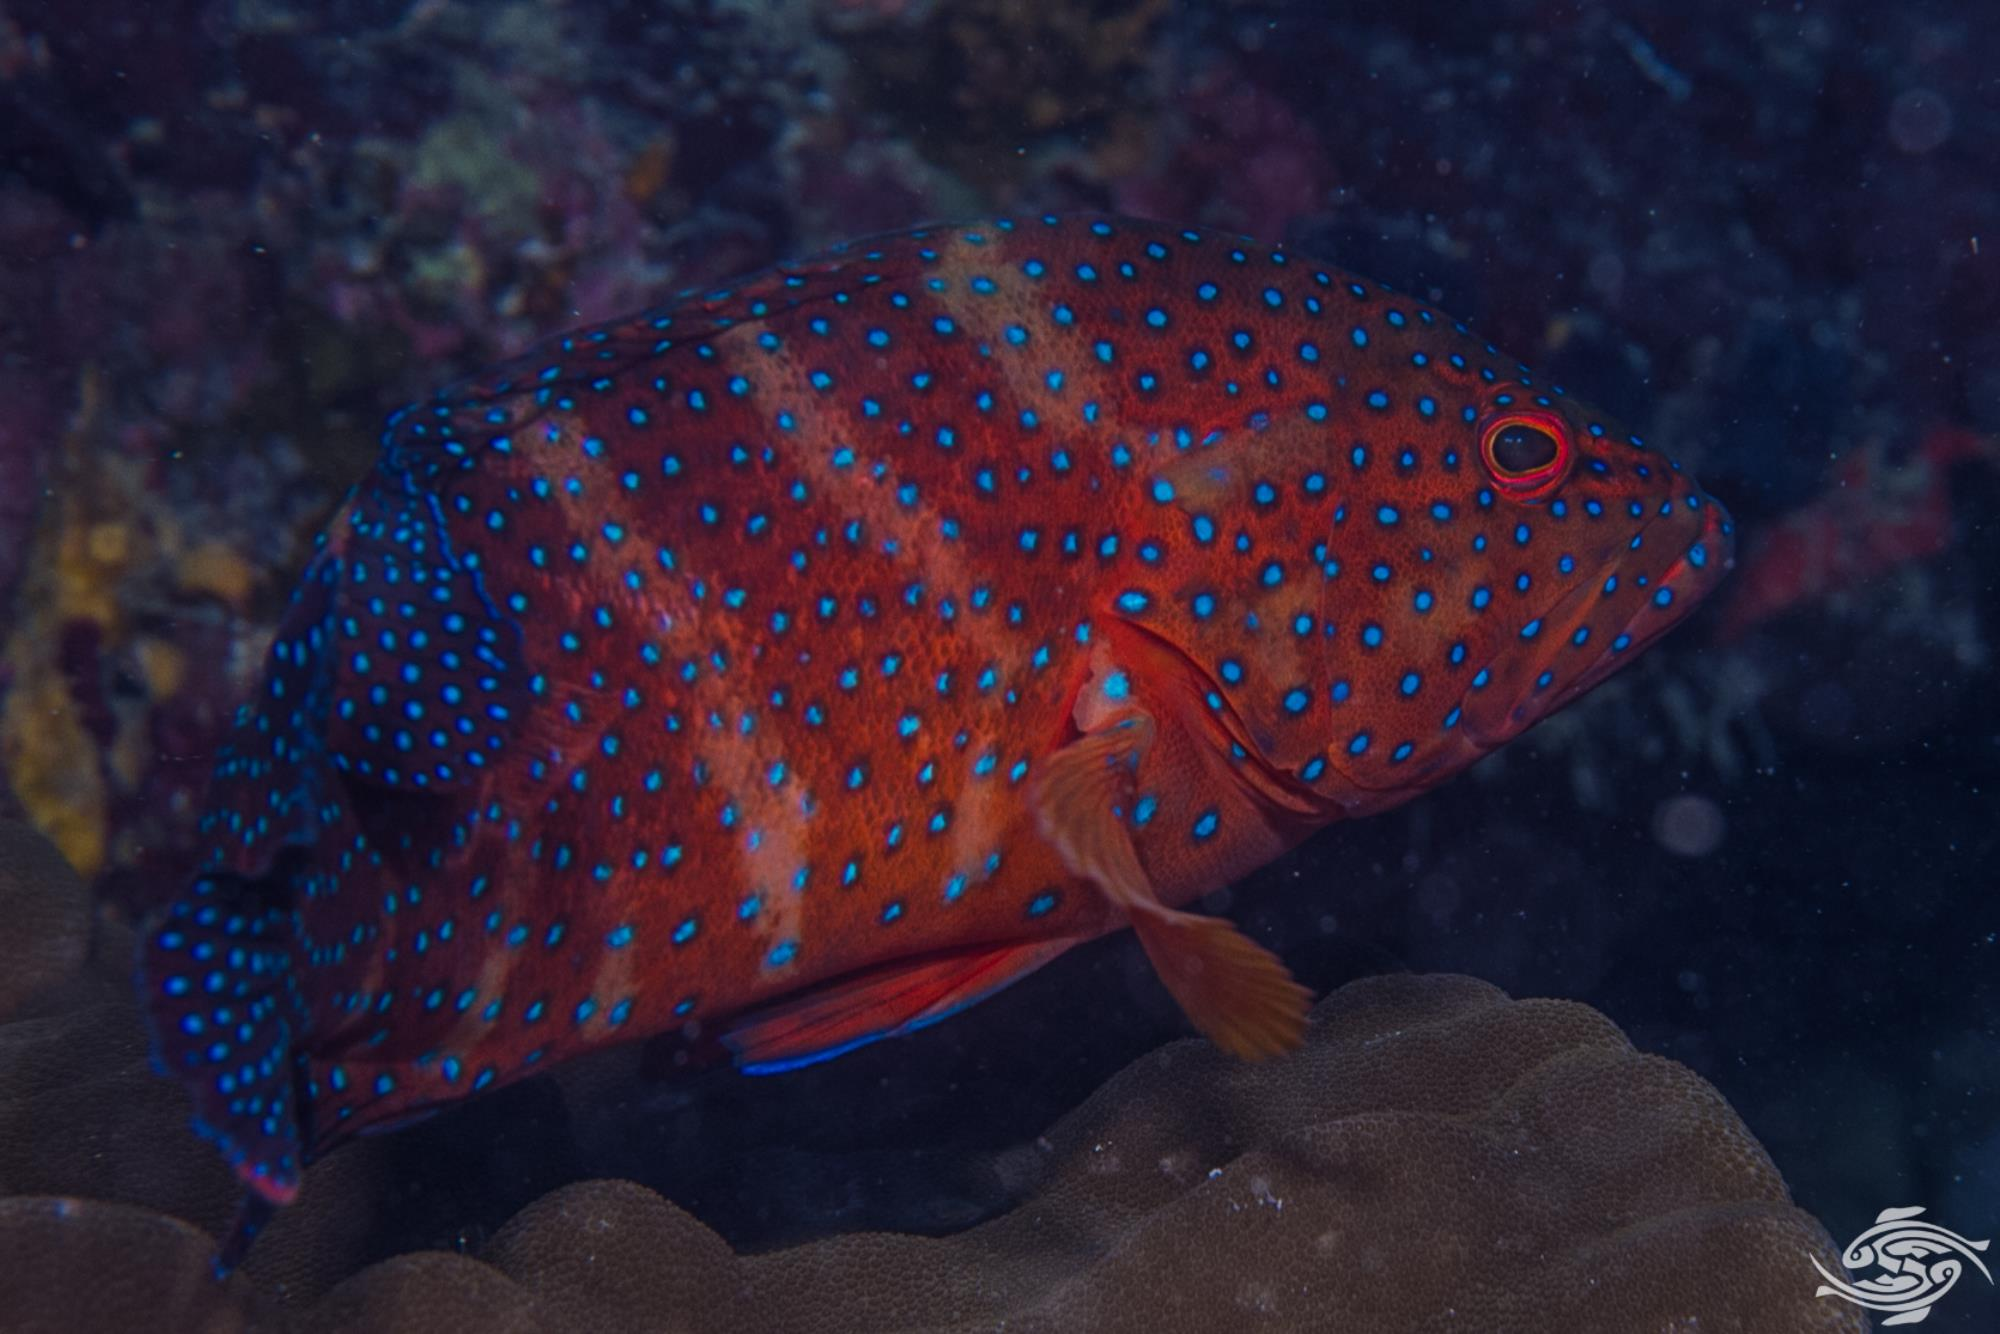 coral rock cod, Cephalopholis miniata, is also known as the coral hind, miniatus grouper, miniata grouper, vermilion seabass, and coral grouper